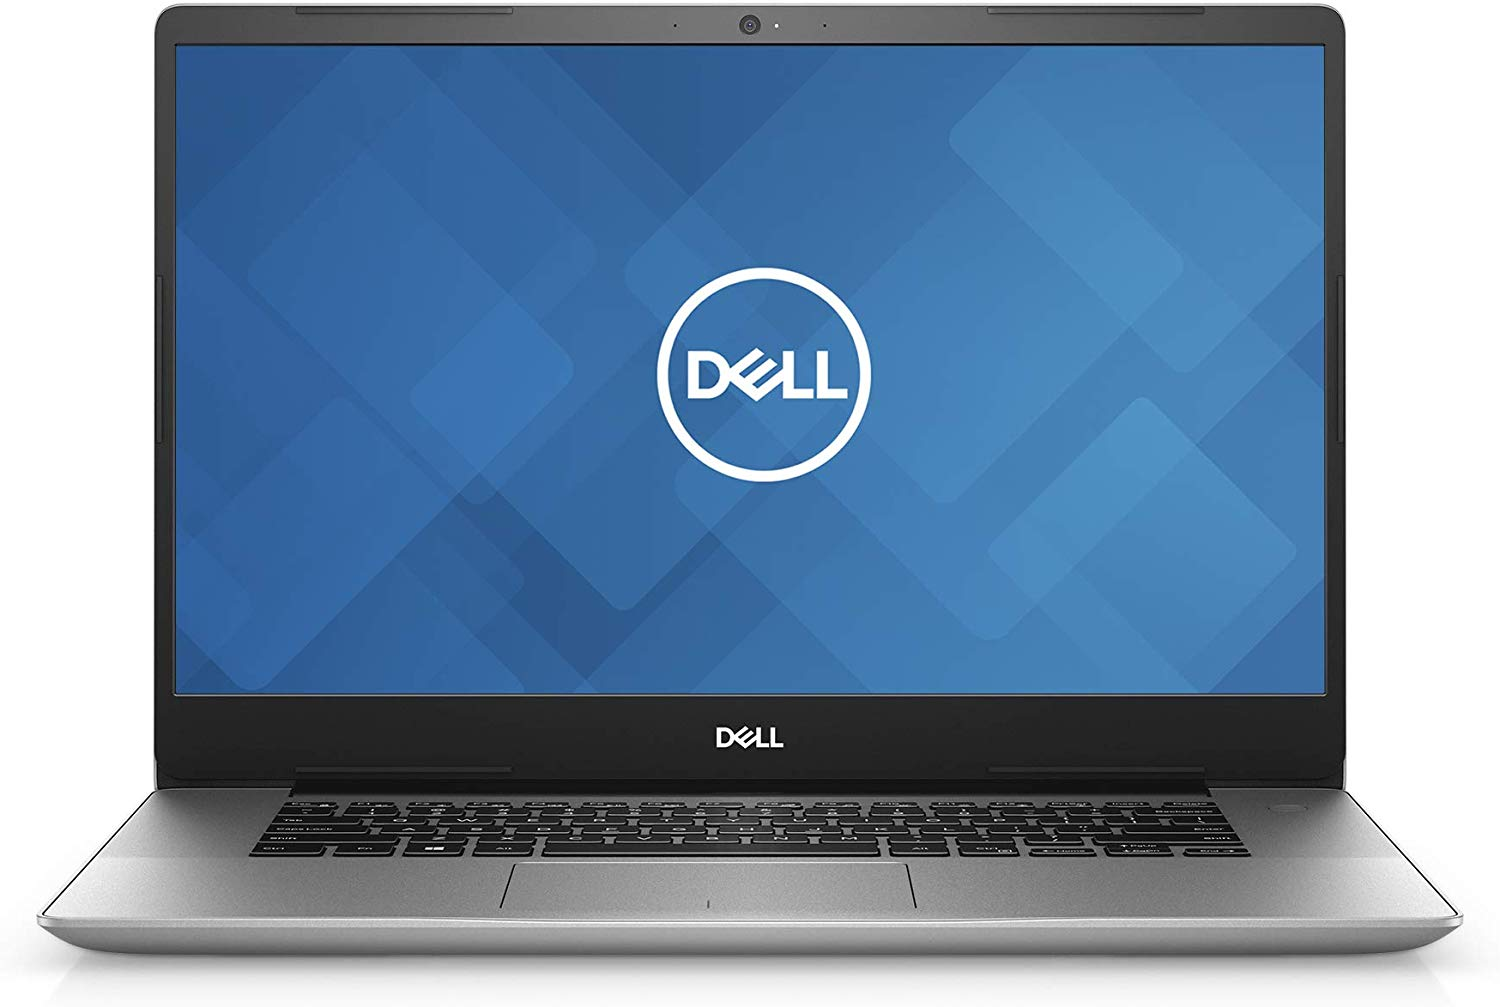 Dell Inspiron 15 5580 Laptop Image